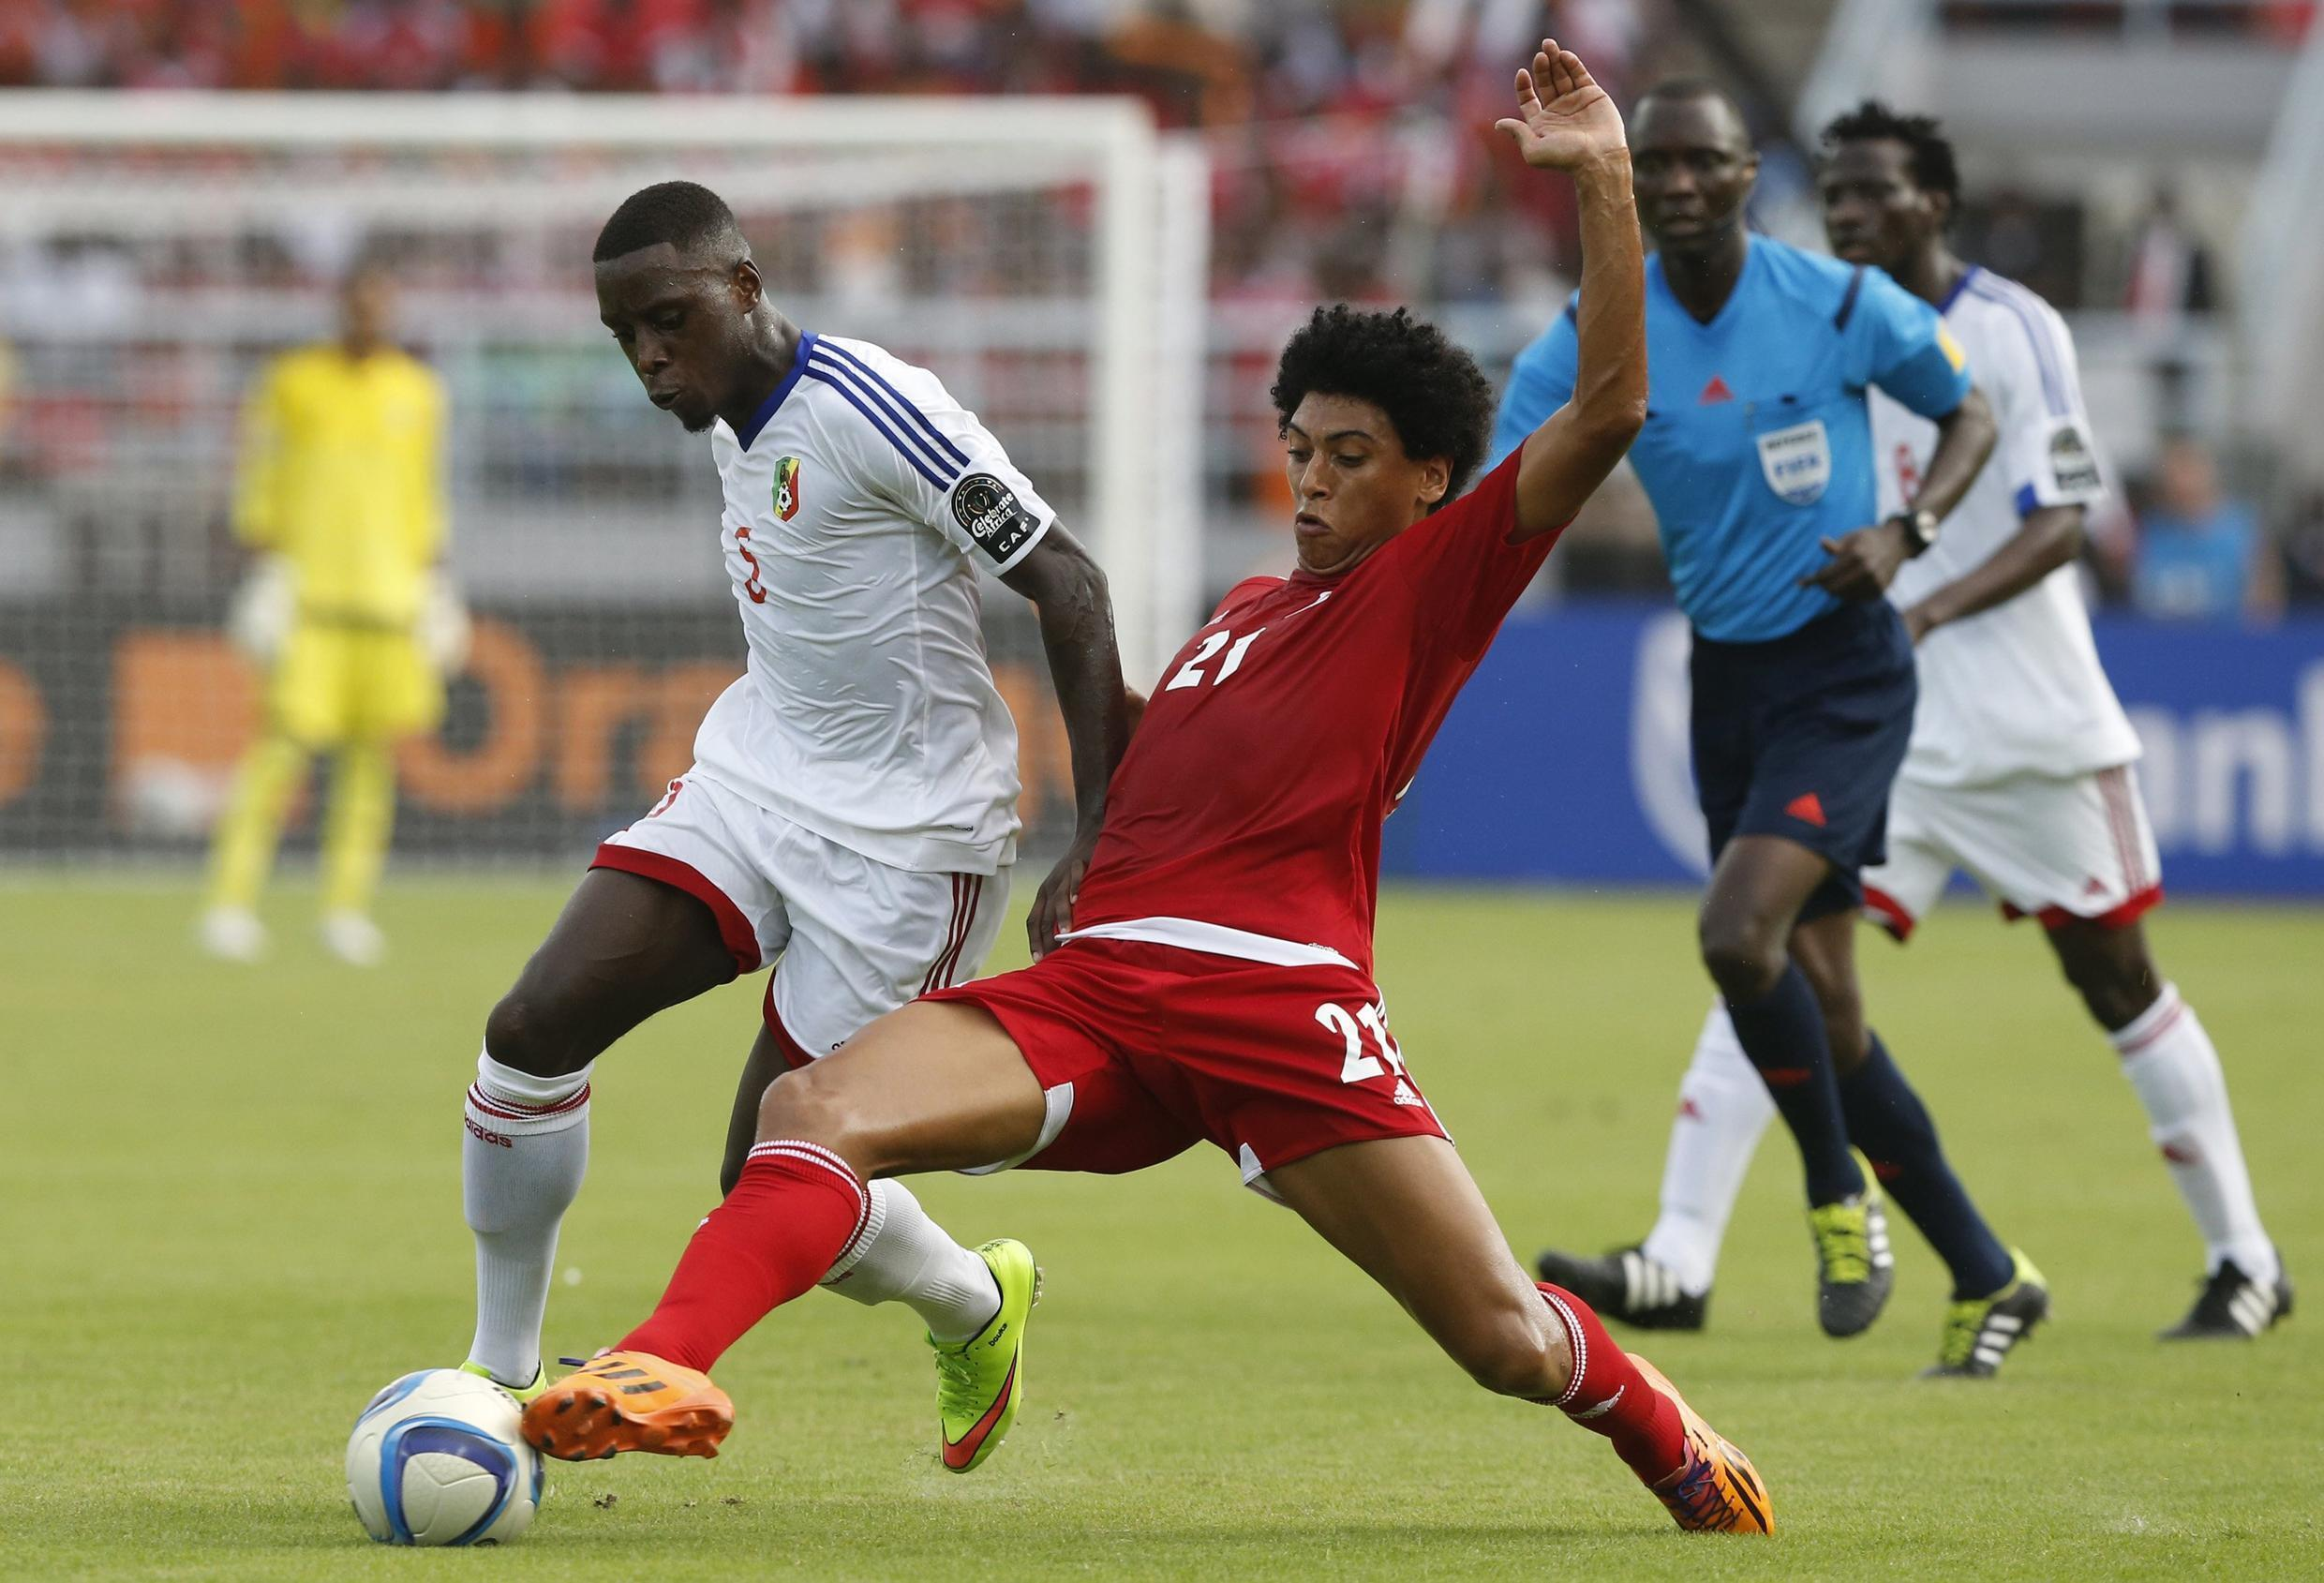 Esono of Equatorial Guinea (R) challenges Congo's Moutou during the opening match in Bata